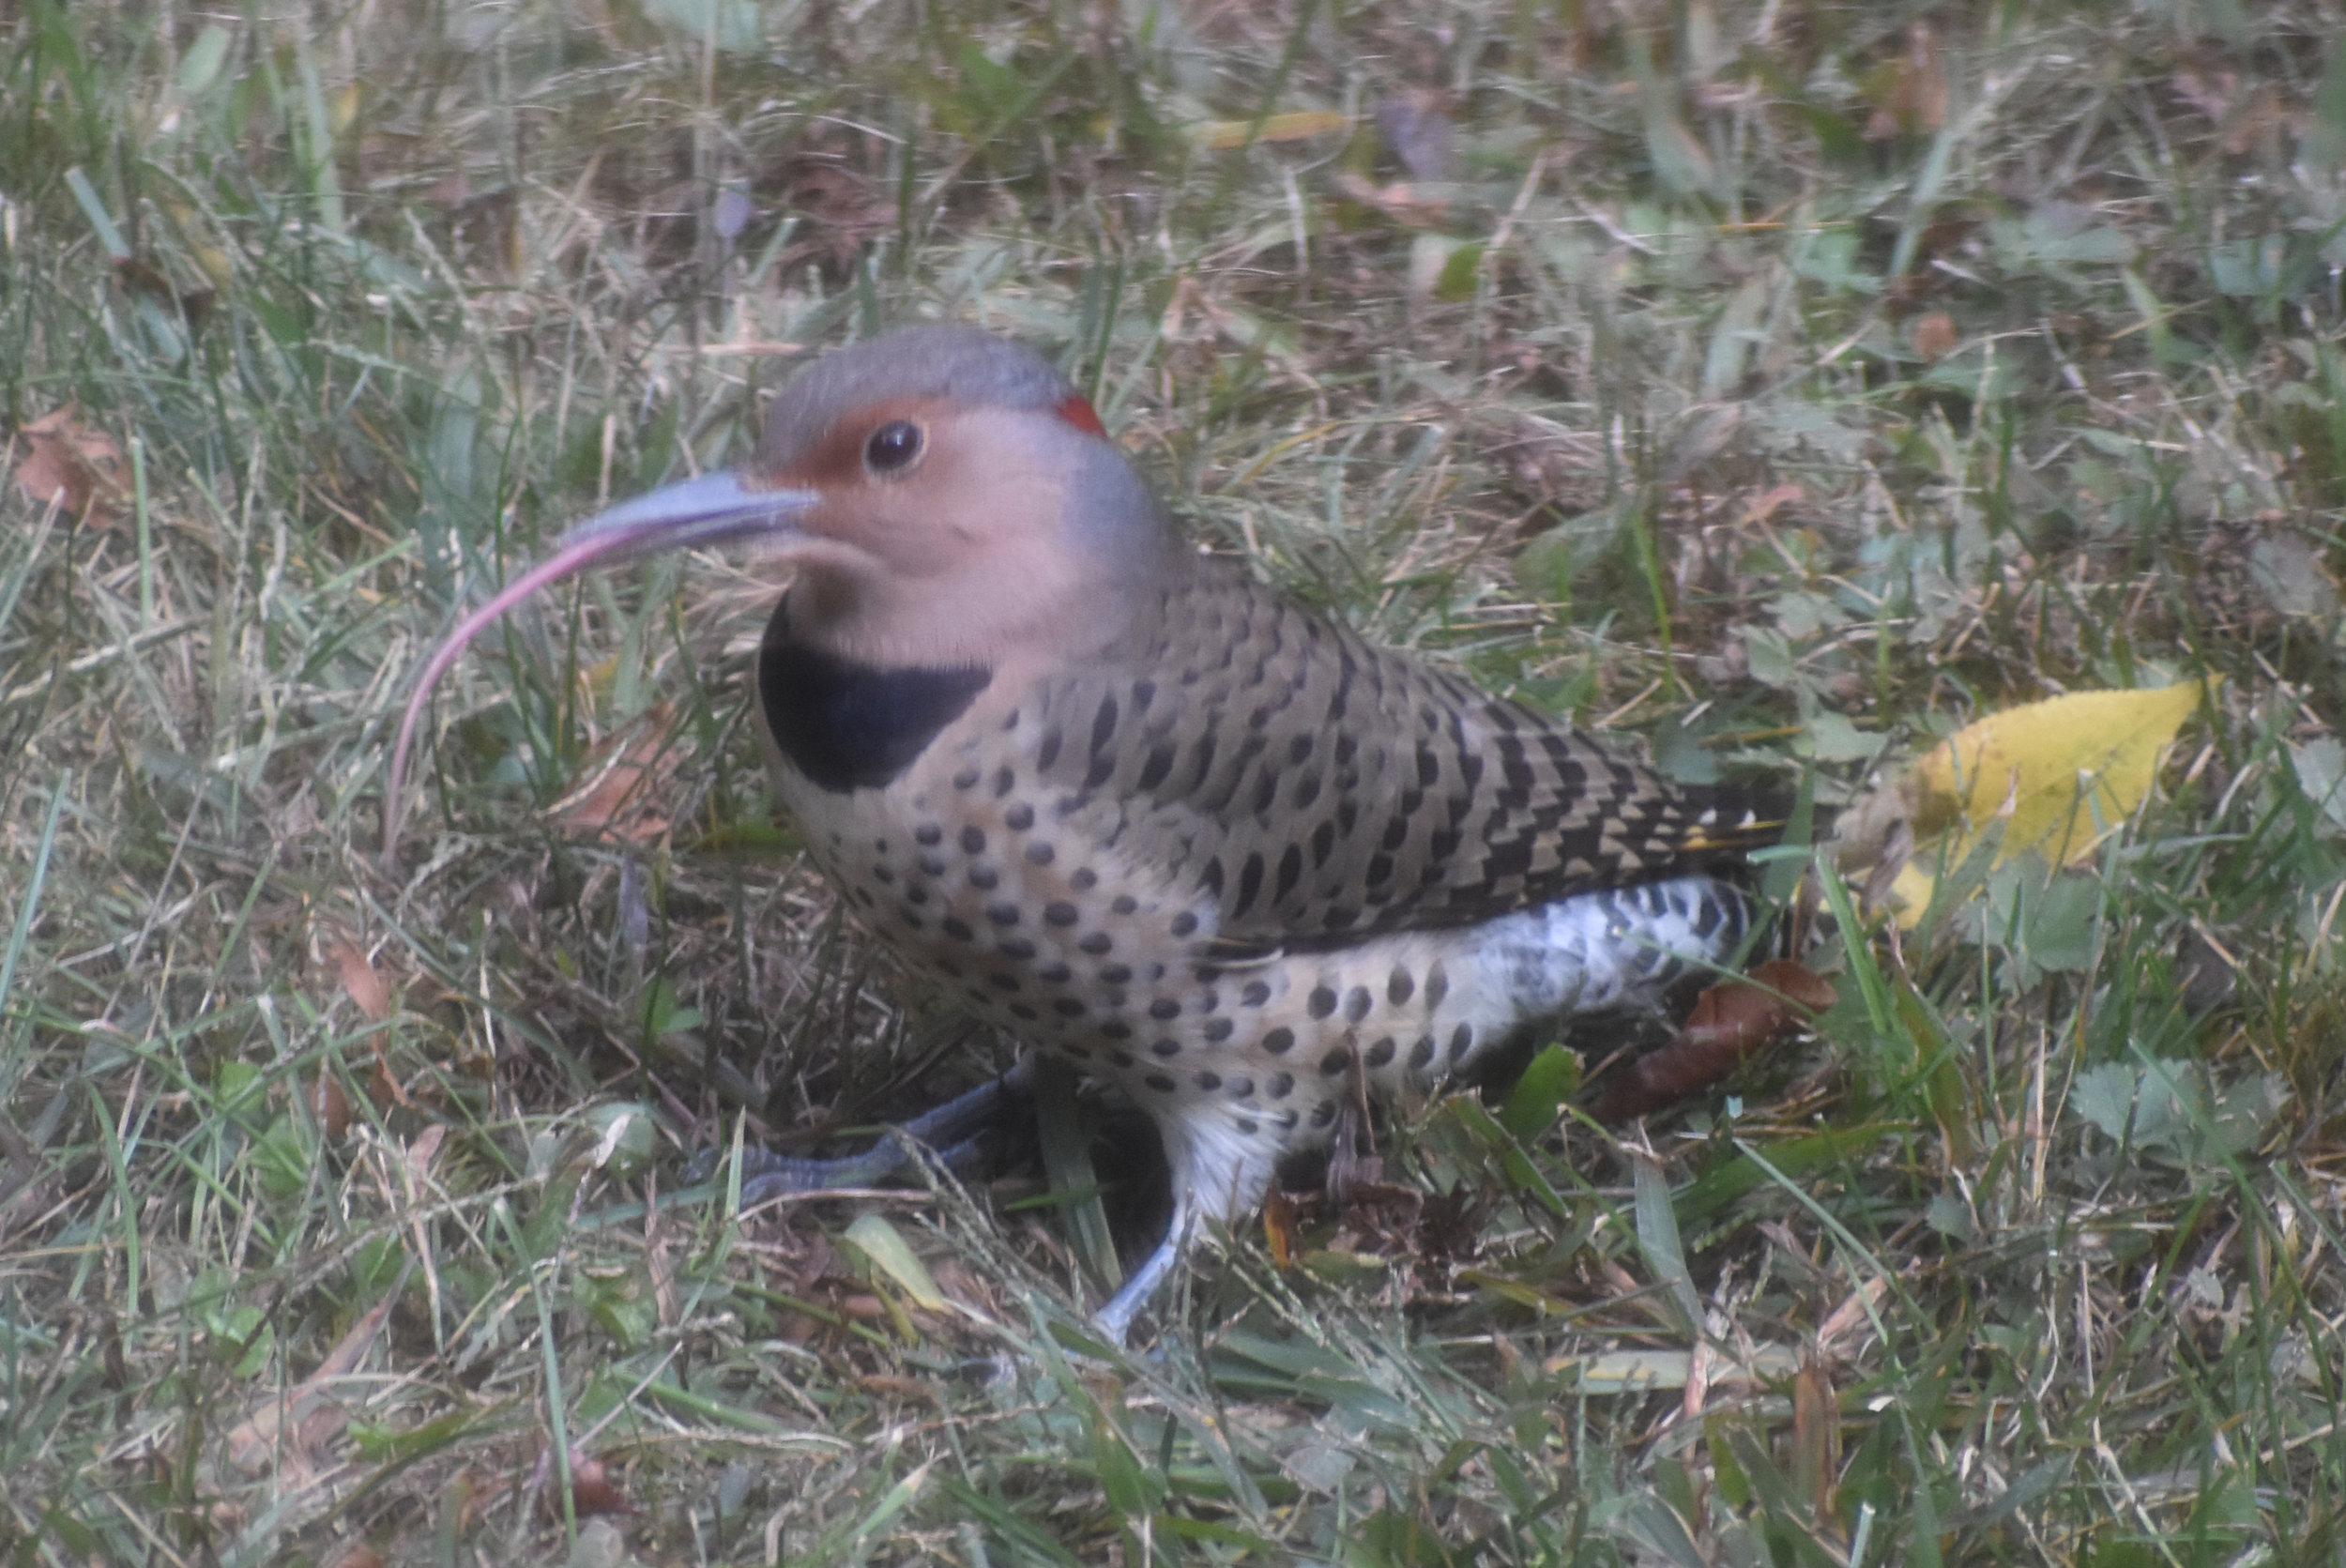 Northern Flicker using long tongue to probe for ants